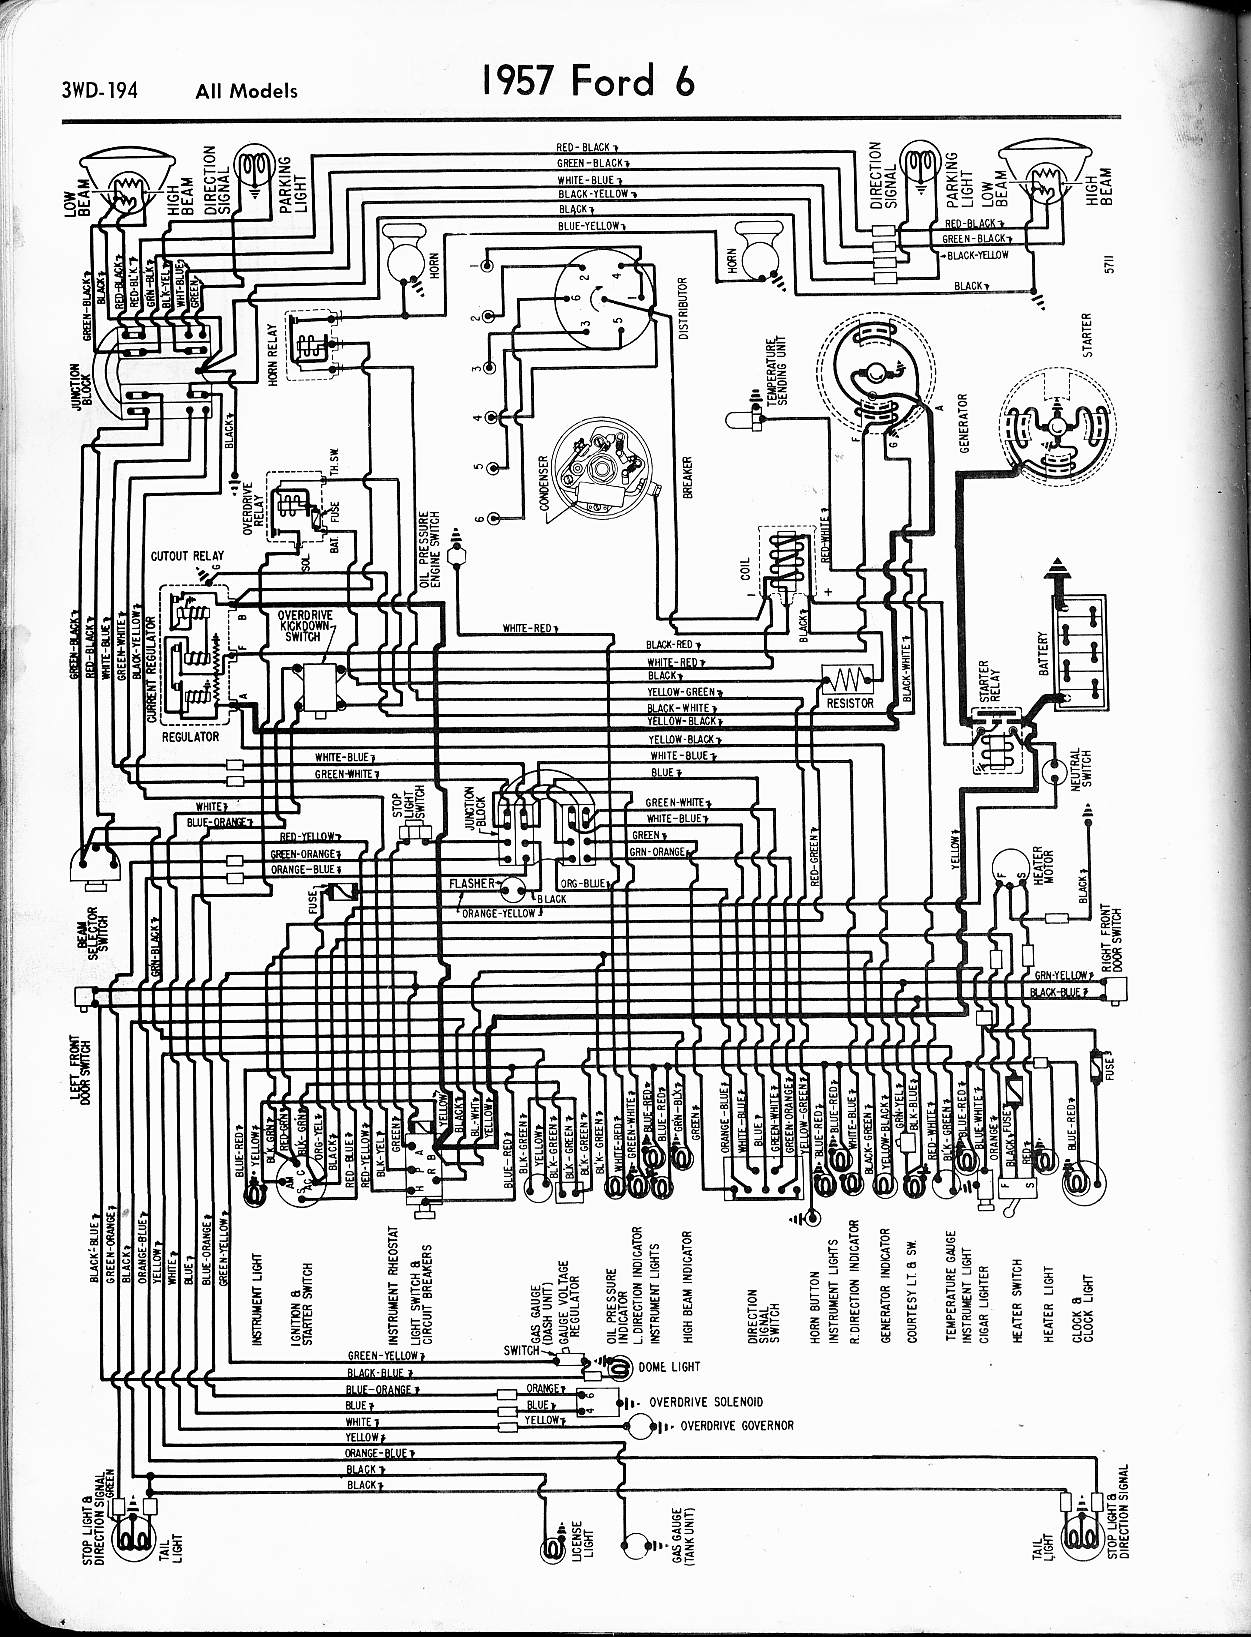 73 Ford Wiring Diagram | Wiring Diagram Basic  Ford F Wiring Diagram on 73 ford f250 steering, 73 ford f250 air conditioning, 73 dodge charger wiring diagram,